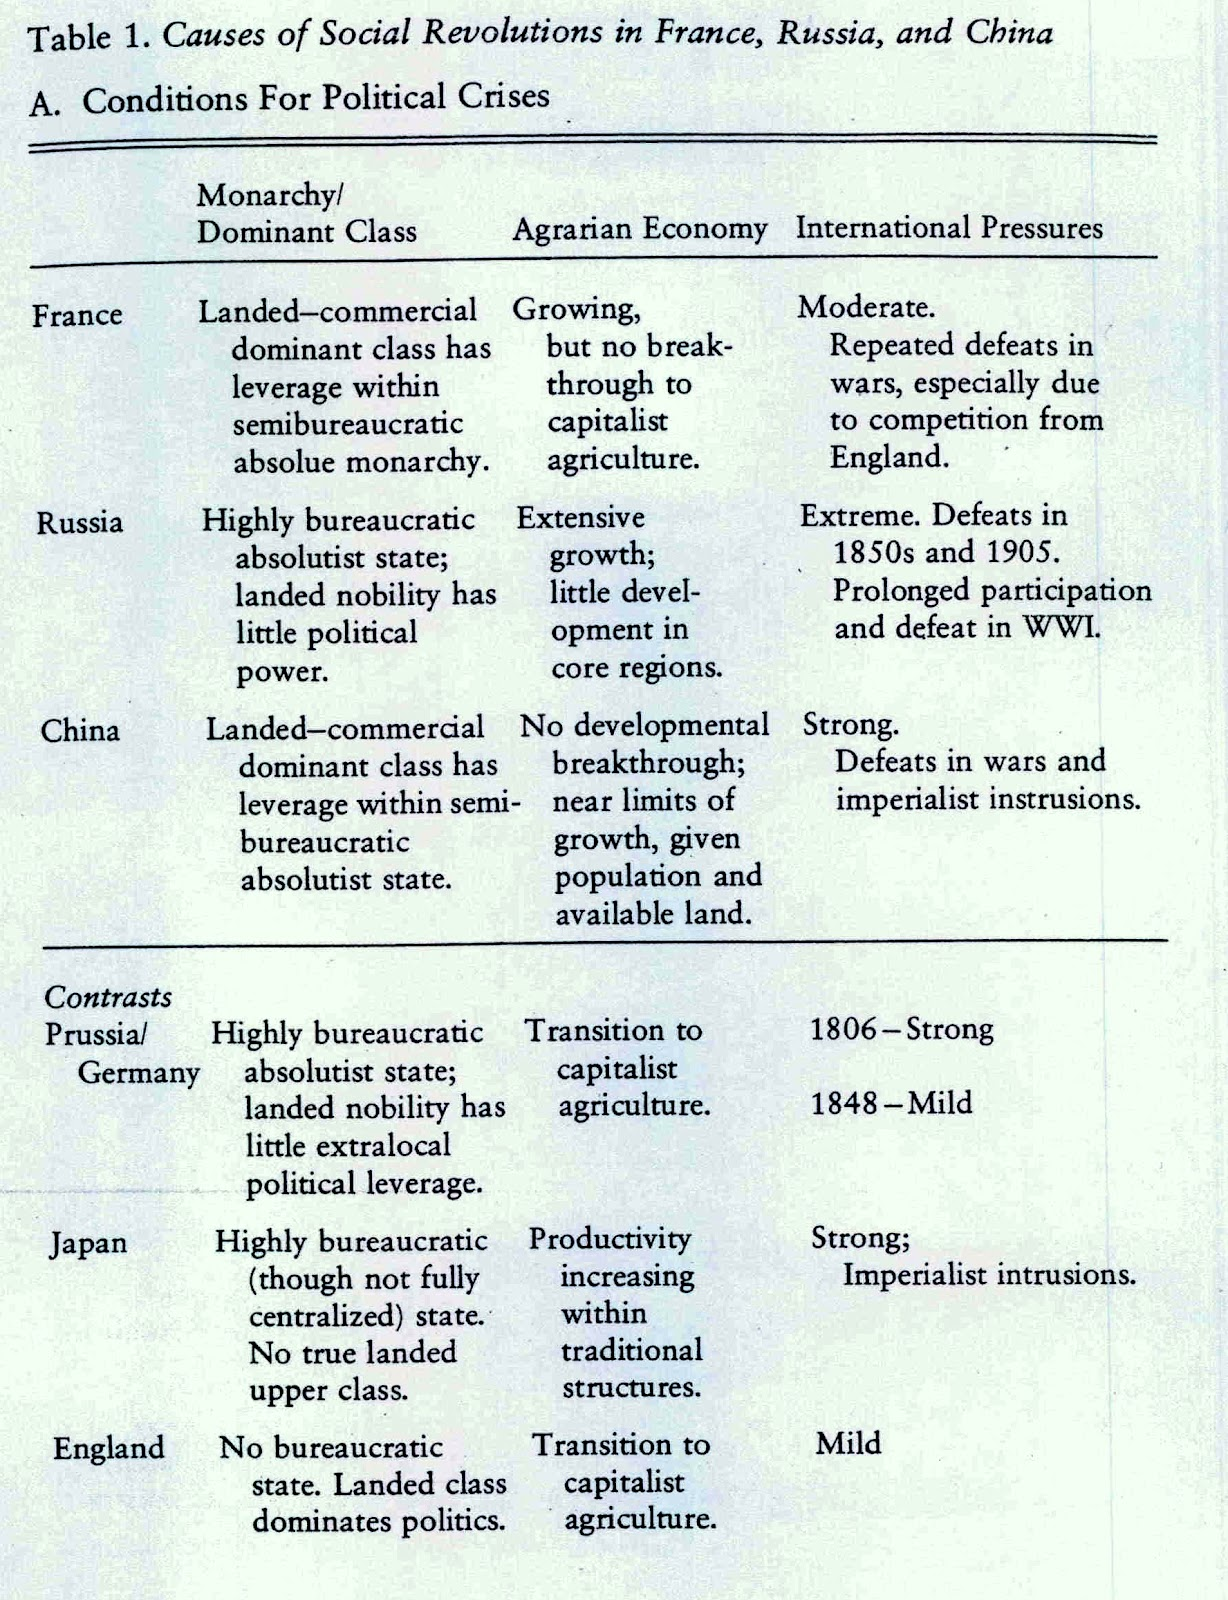 Comparison between Russian and German Revolutions - Essay Example